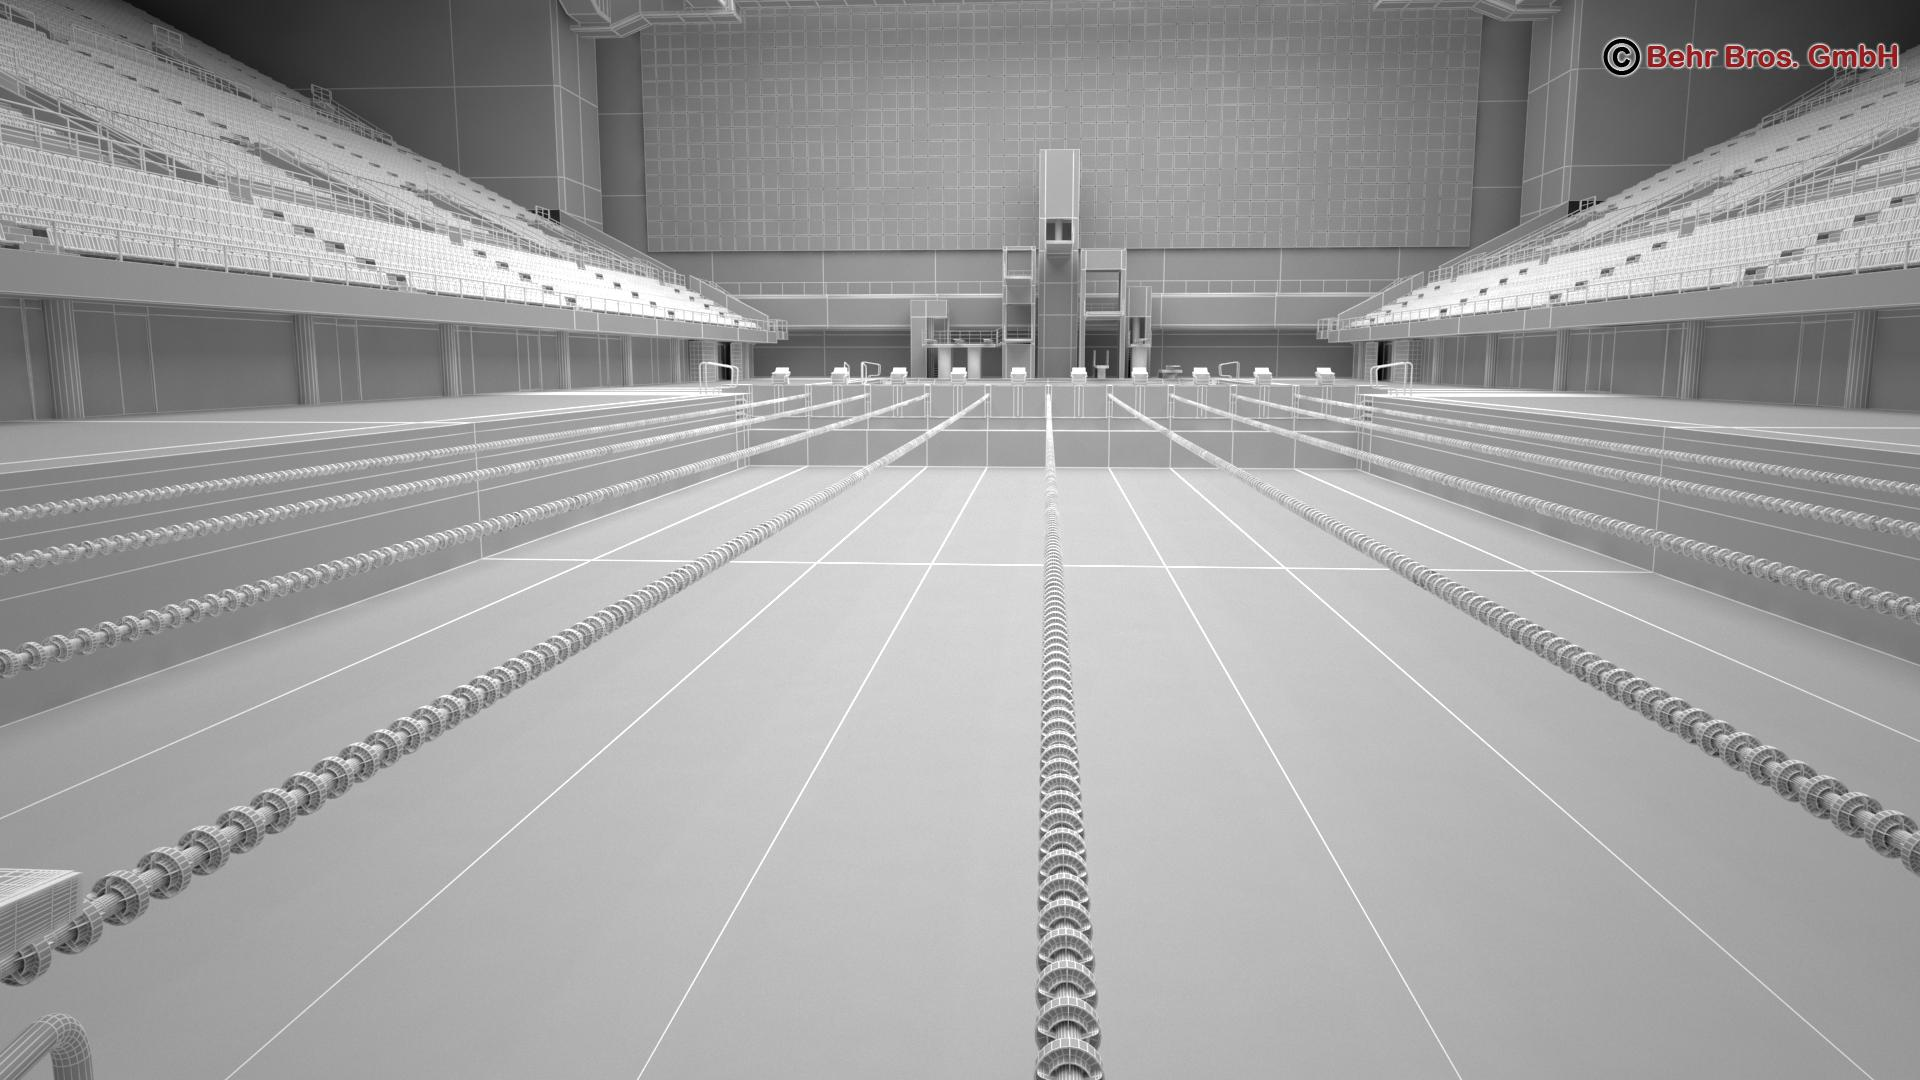 swim stadium 3d model 3ds max fbx c4d lwo ma mb obj 204440